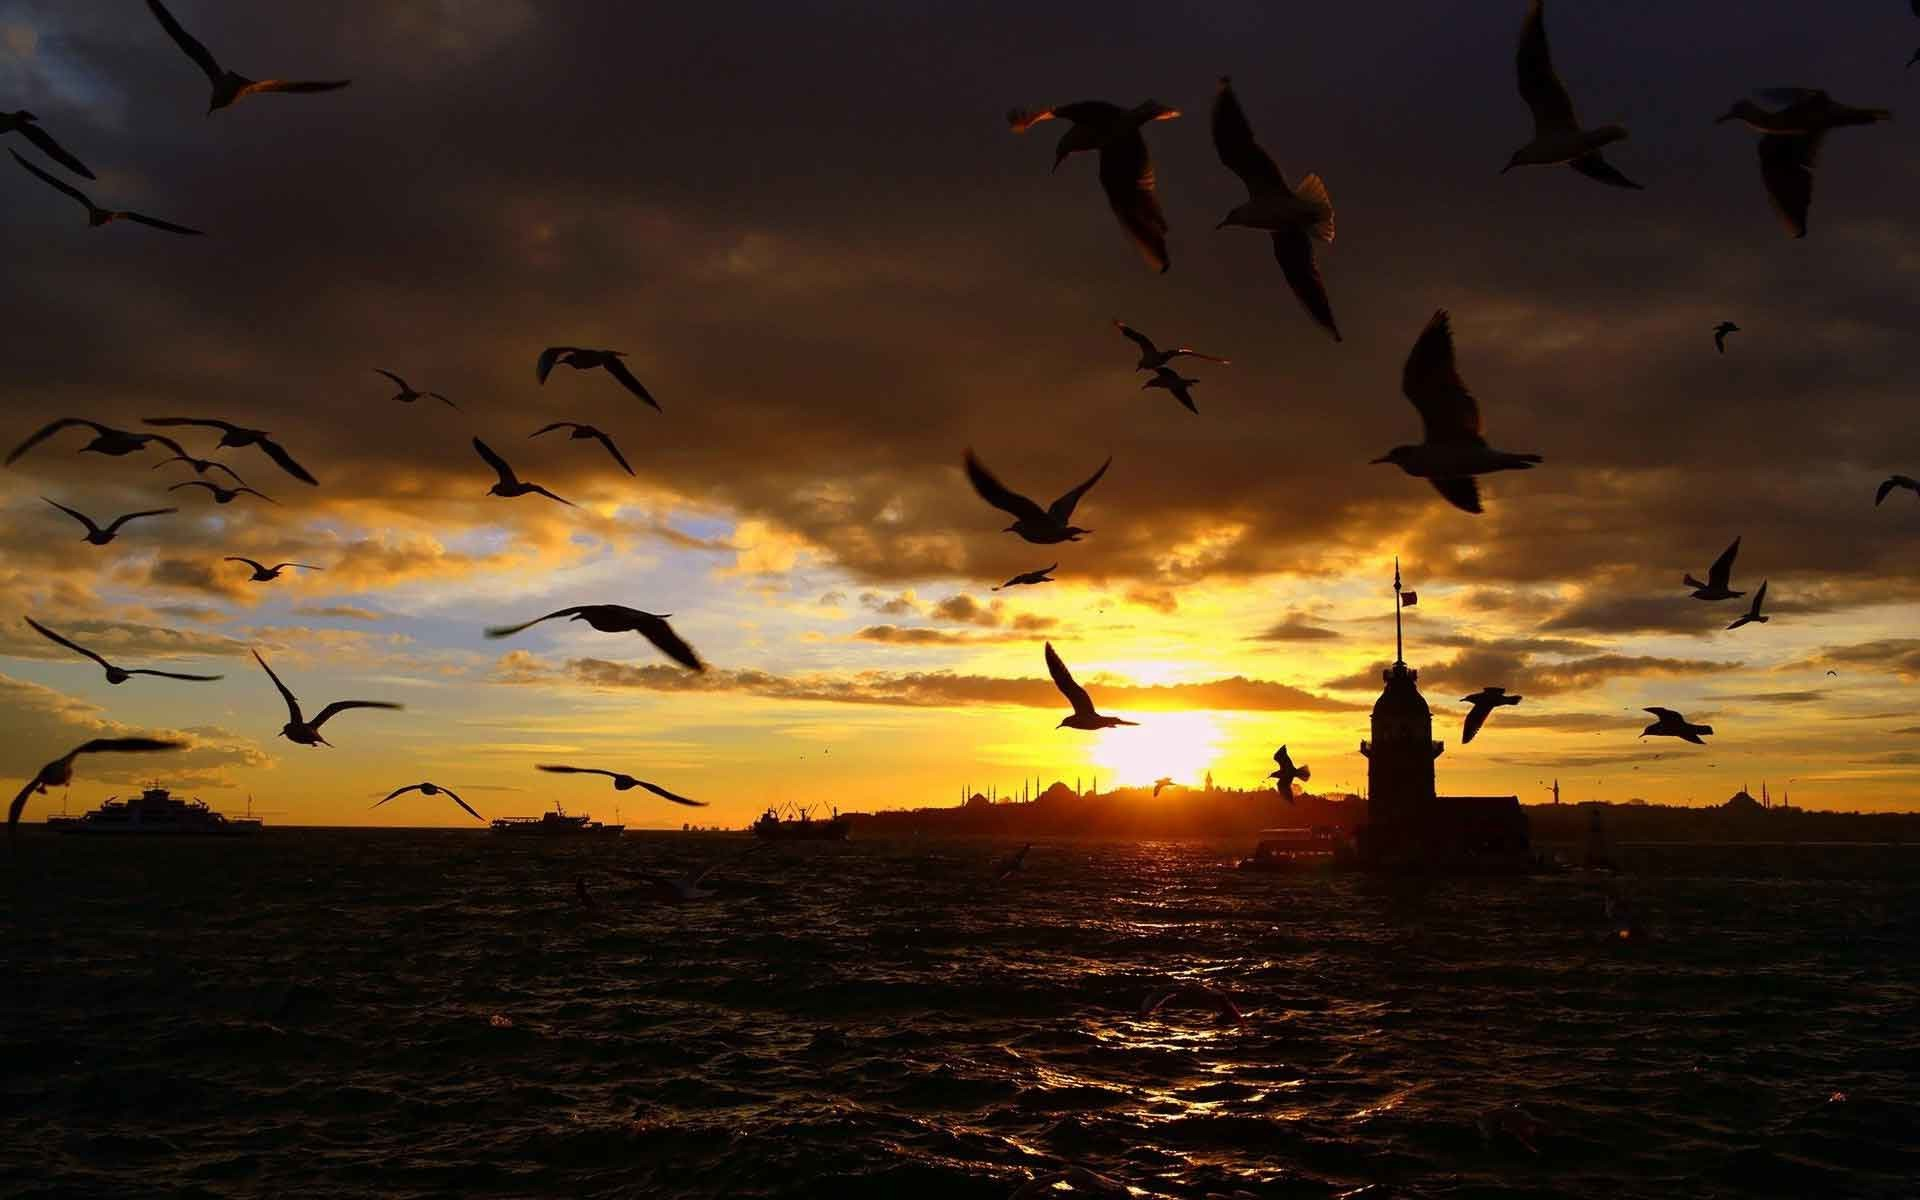 Landscapes Istanbul Sea Night Turkey Birds Flying Black And White Nature  Iphone Wallpaper